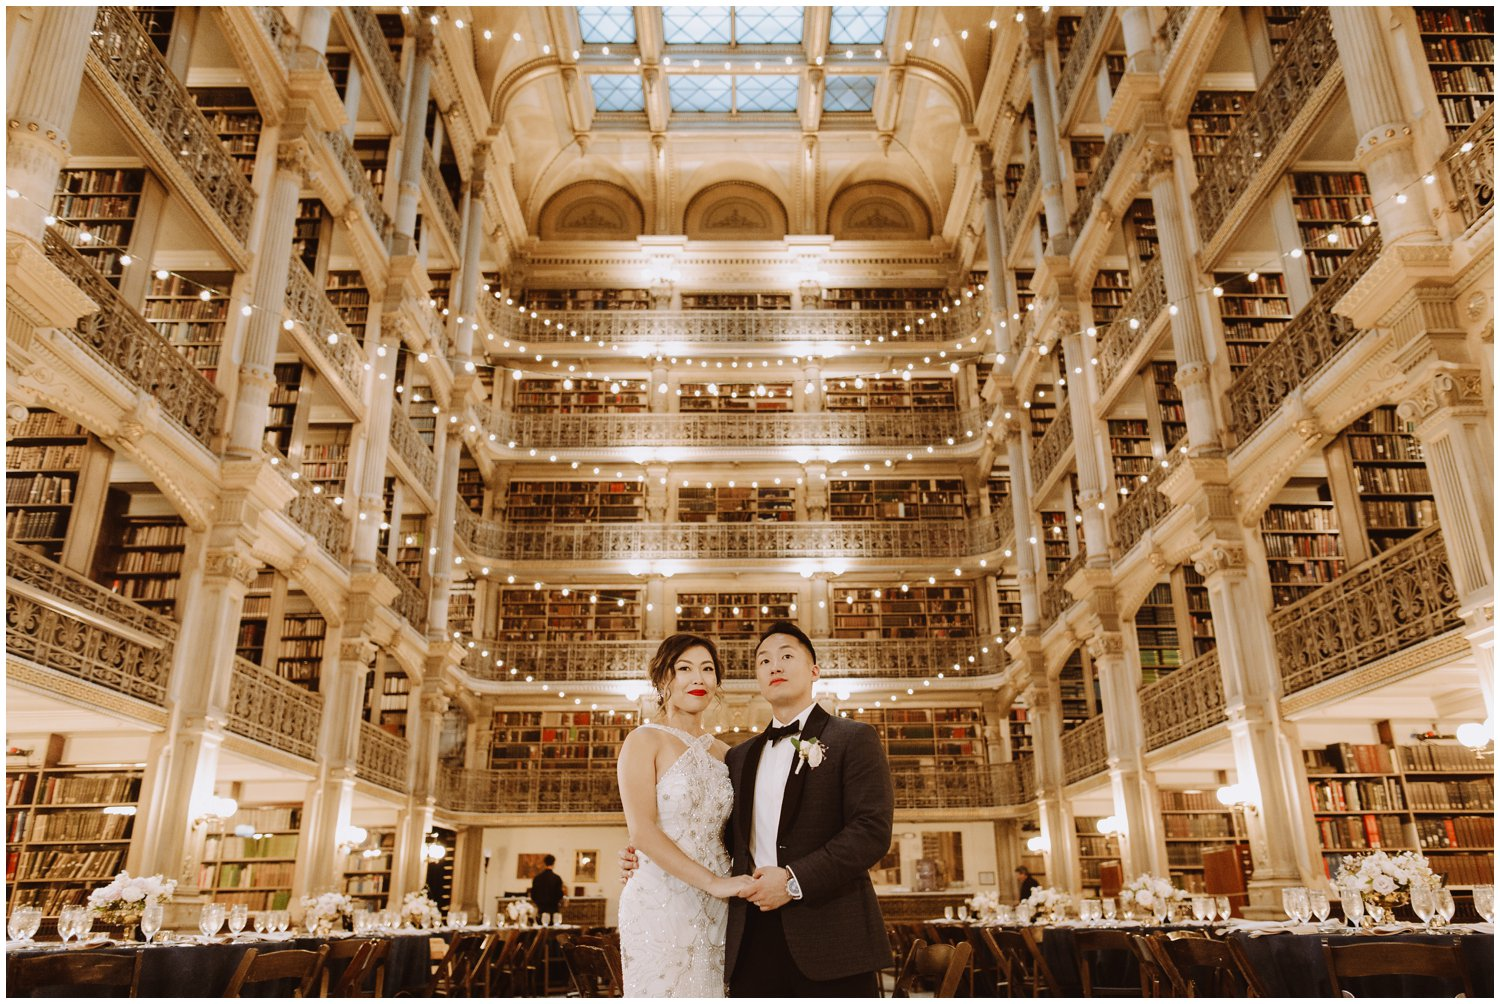 Peabody Library Wedding | Bride and Groom Peabody Library Portraits | Baltimore Wedding Photographer | Art Deco Wedding Photography | Baltimore City Wedding | Kate Ann Photography